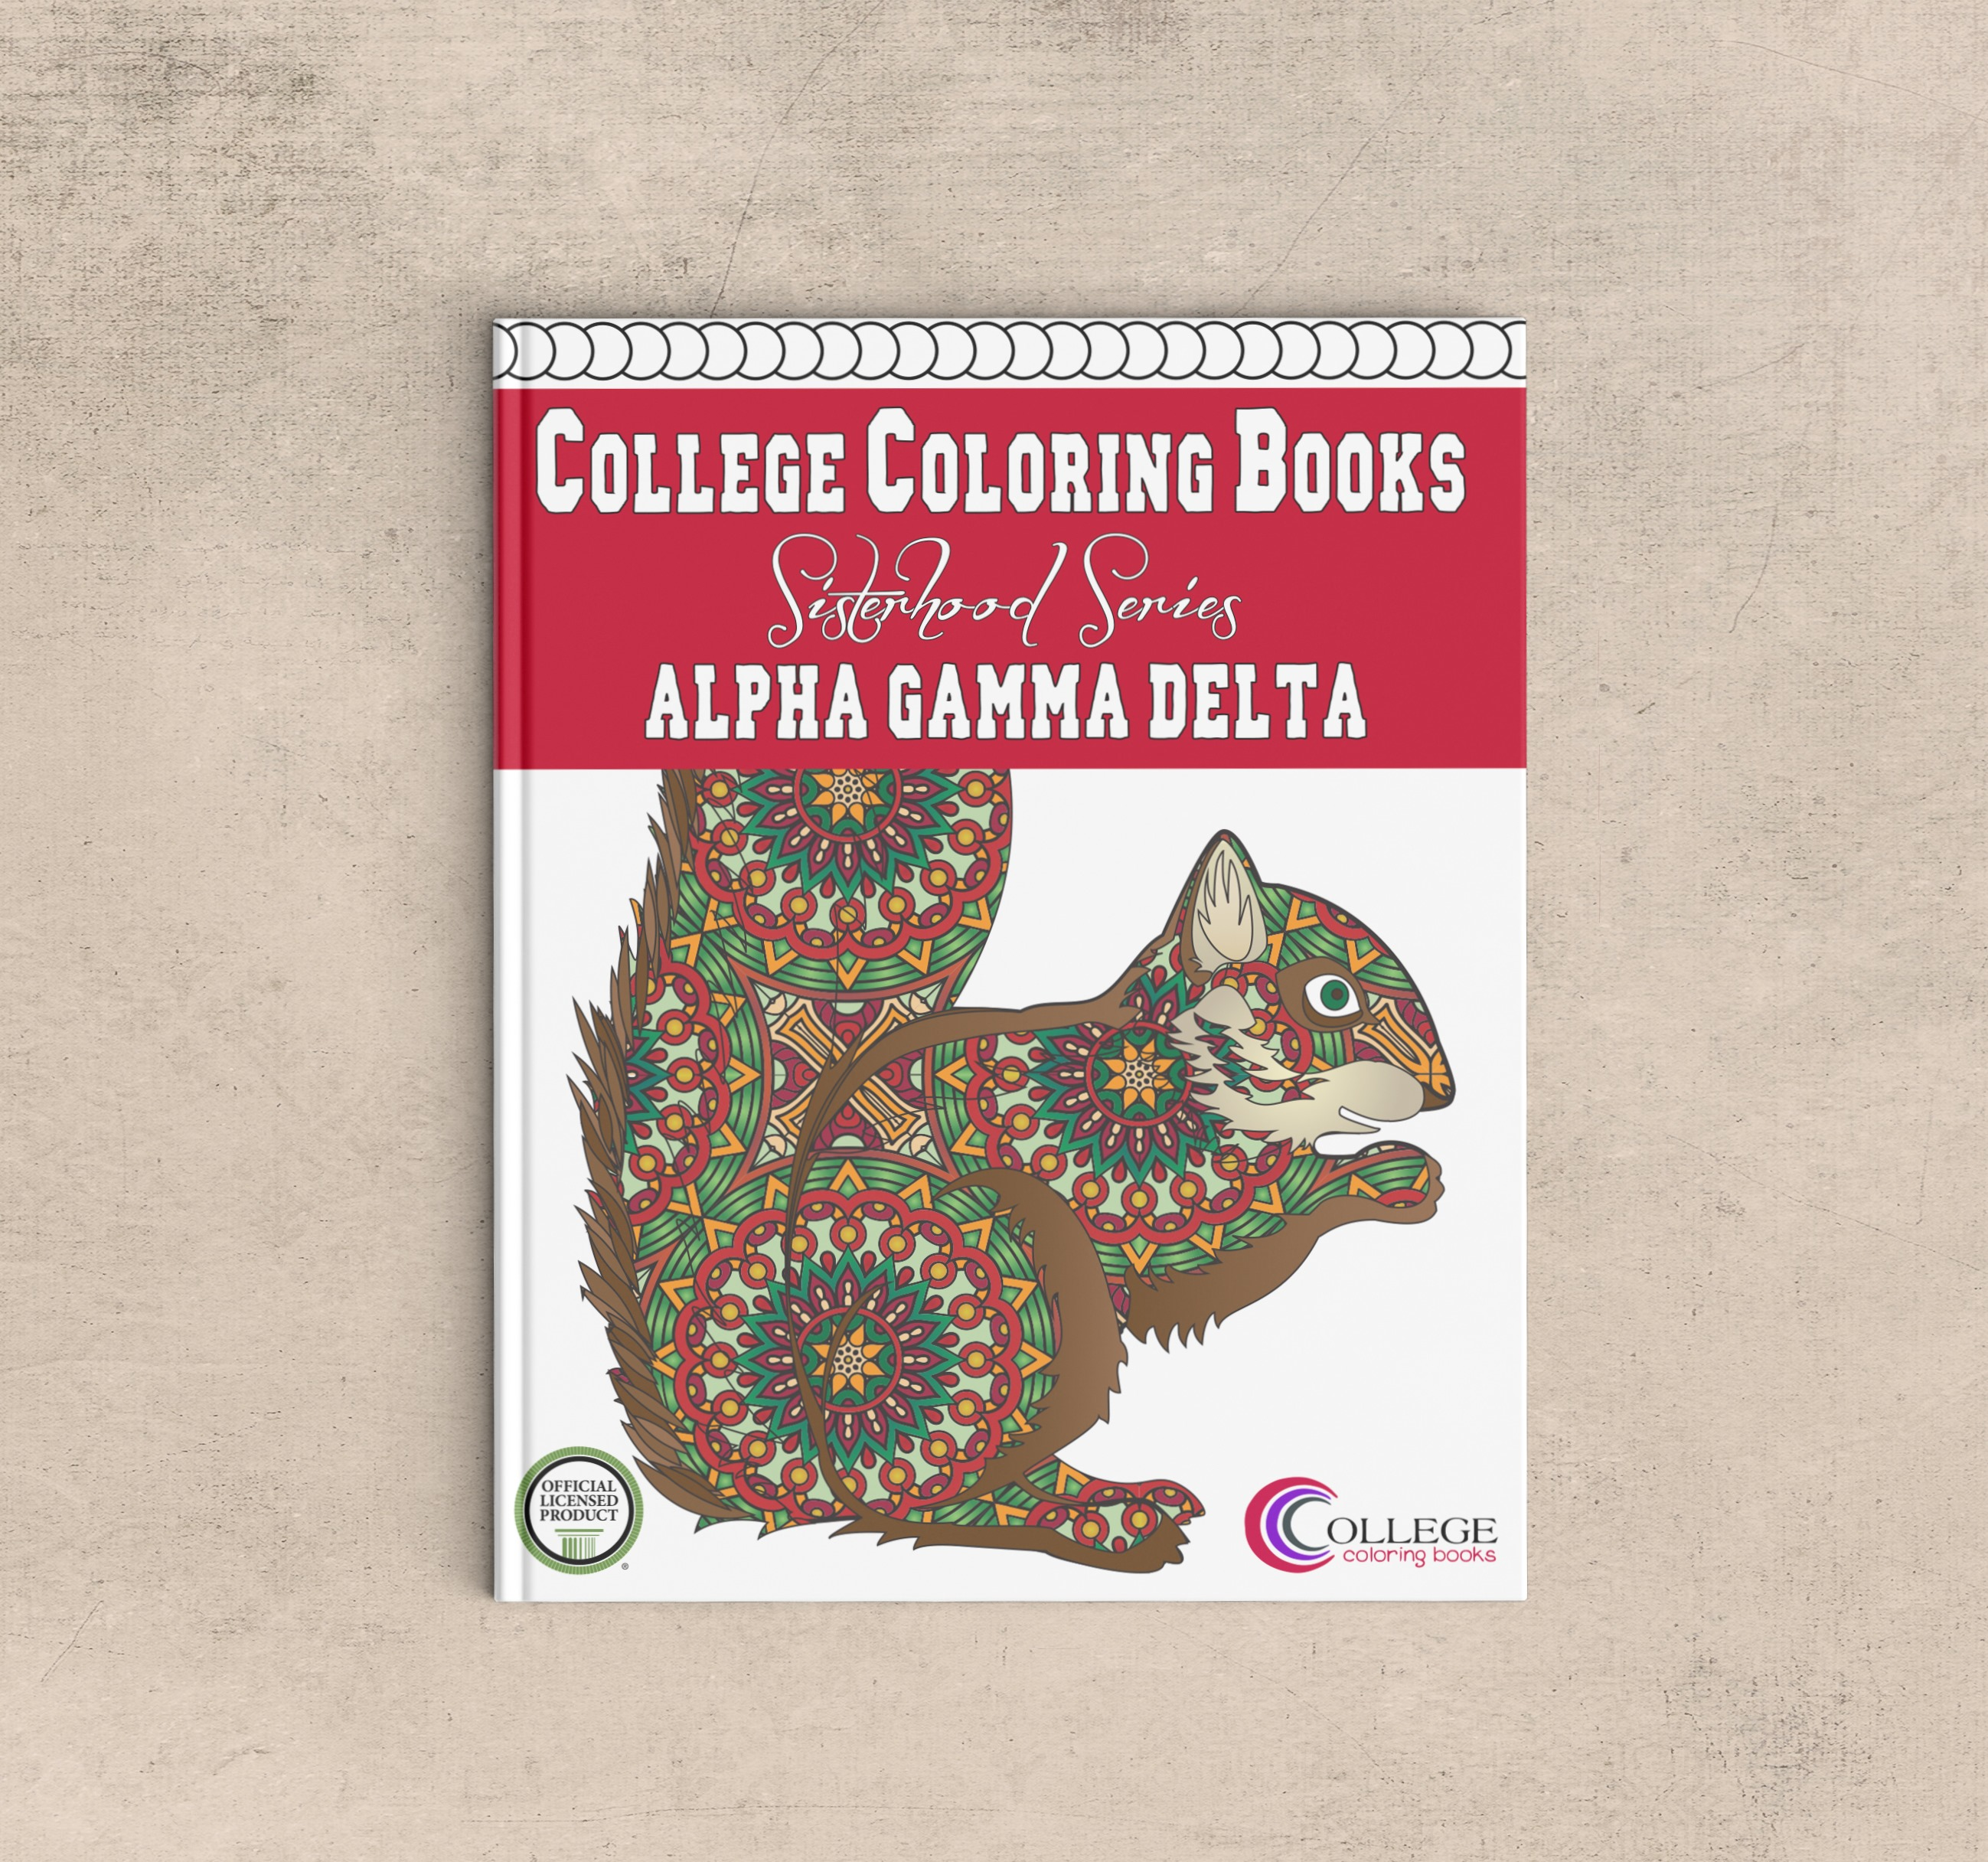 College Coloring Books Alpha Gamma Delta Coloring Book